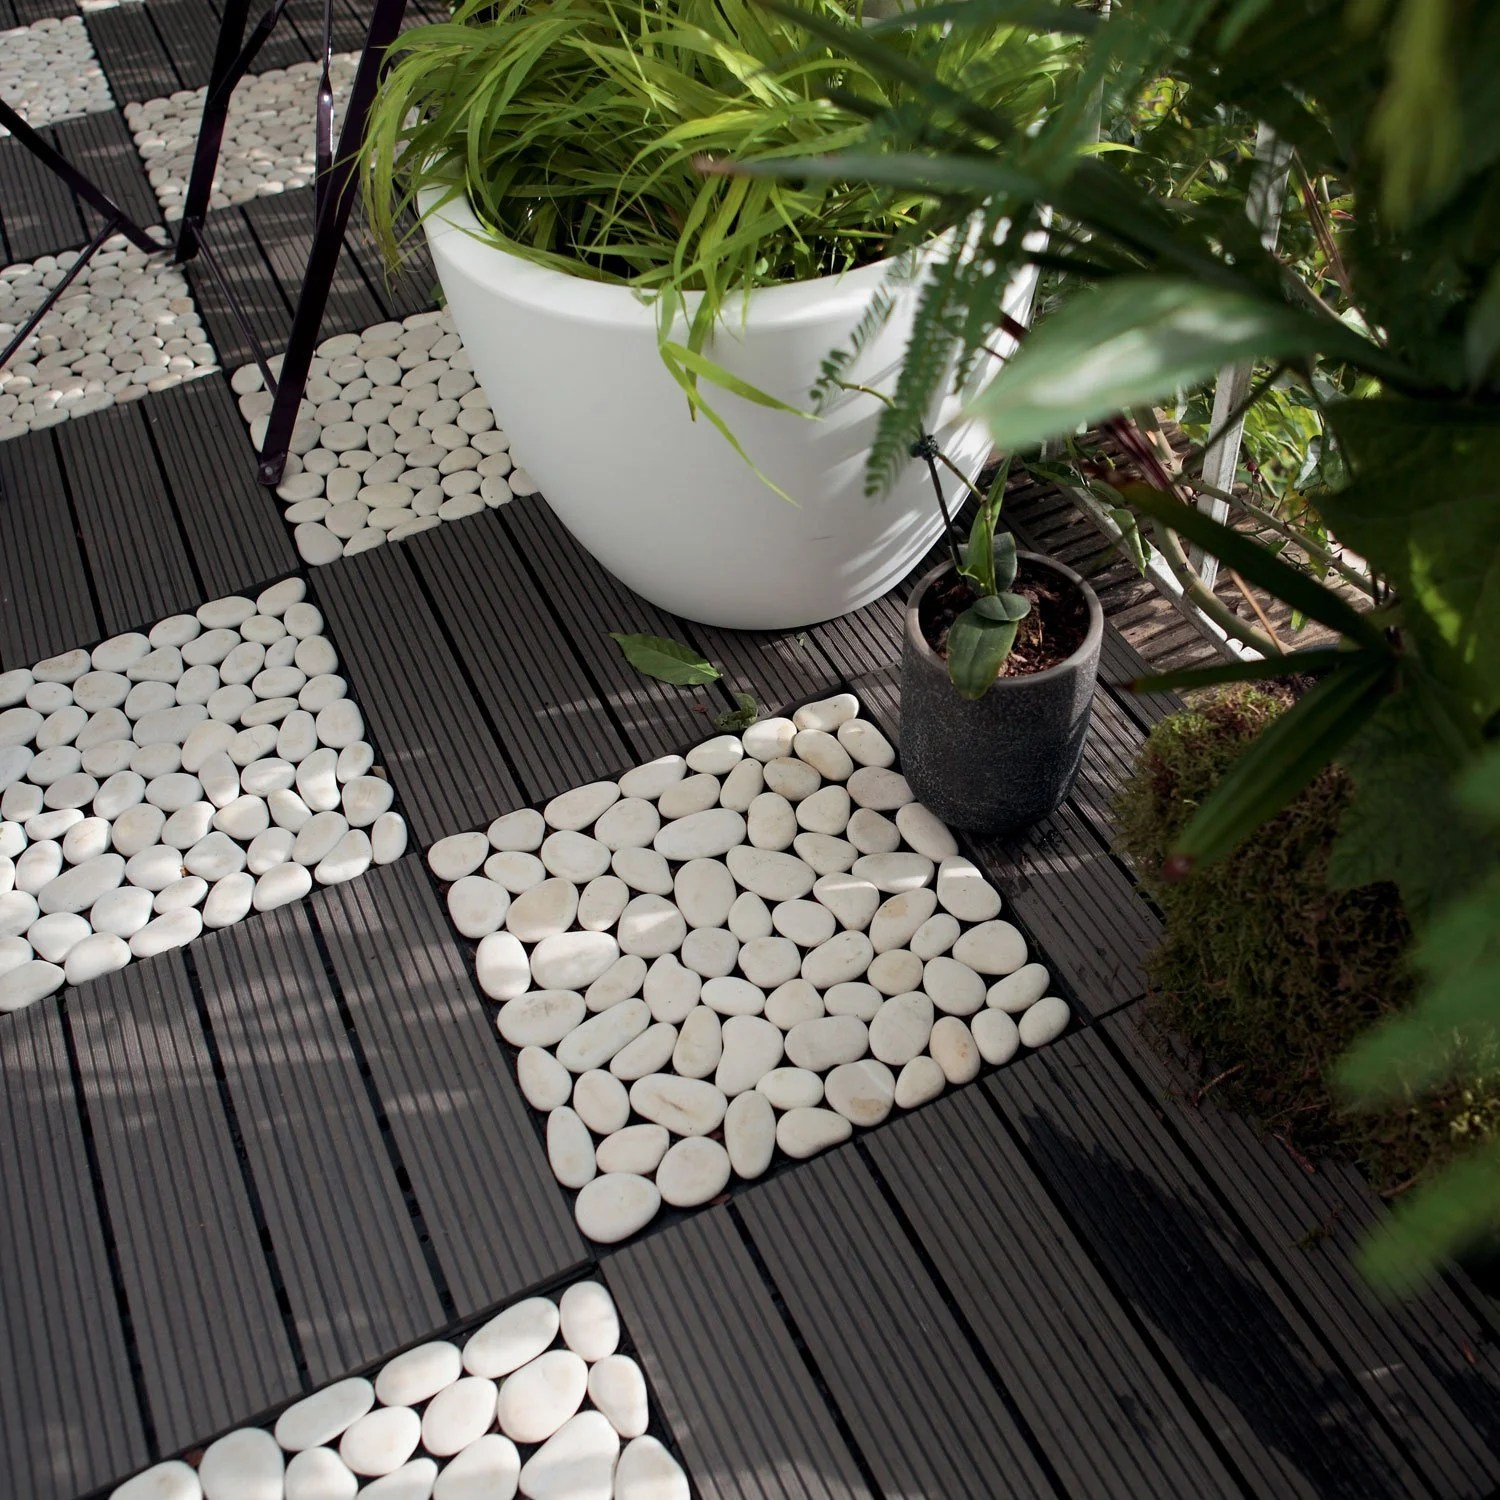 Lame Terrasse Clipsable Dalle Clipsable Composite, Gris, L.30 X L.30 Cm X Ep.23 Mm